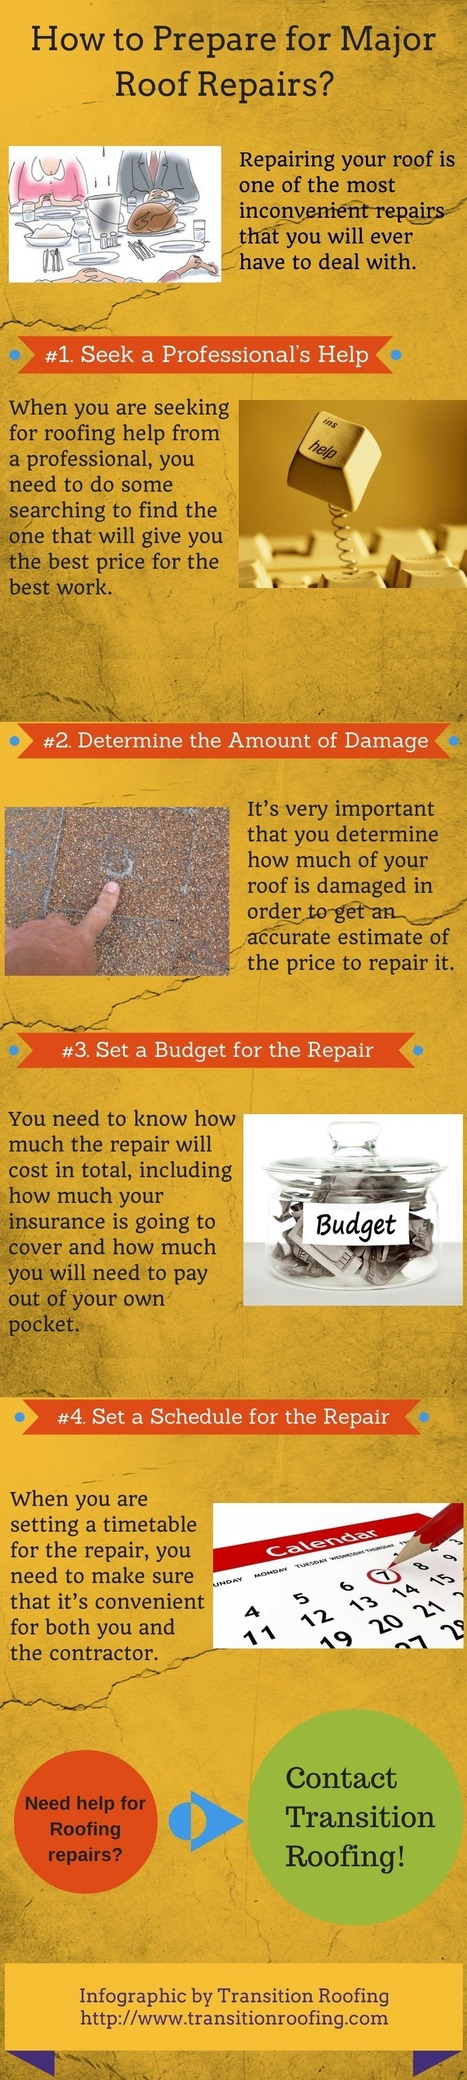 How To Prepare For Major Roof Repairs? | Austin Roofing Experts | Scoop.it